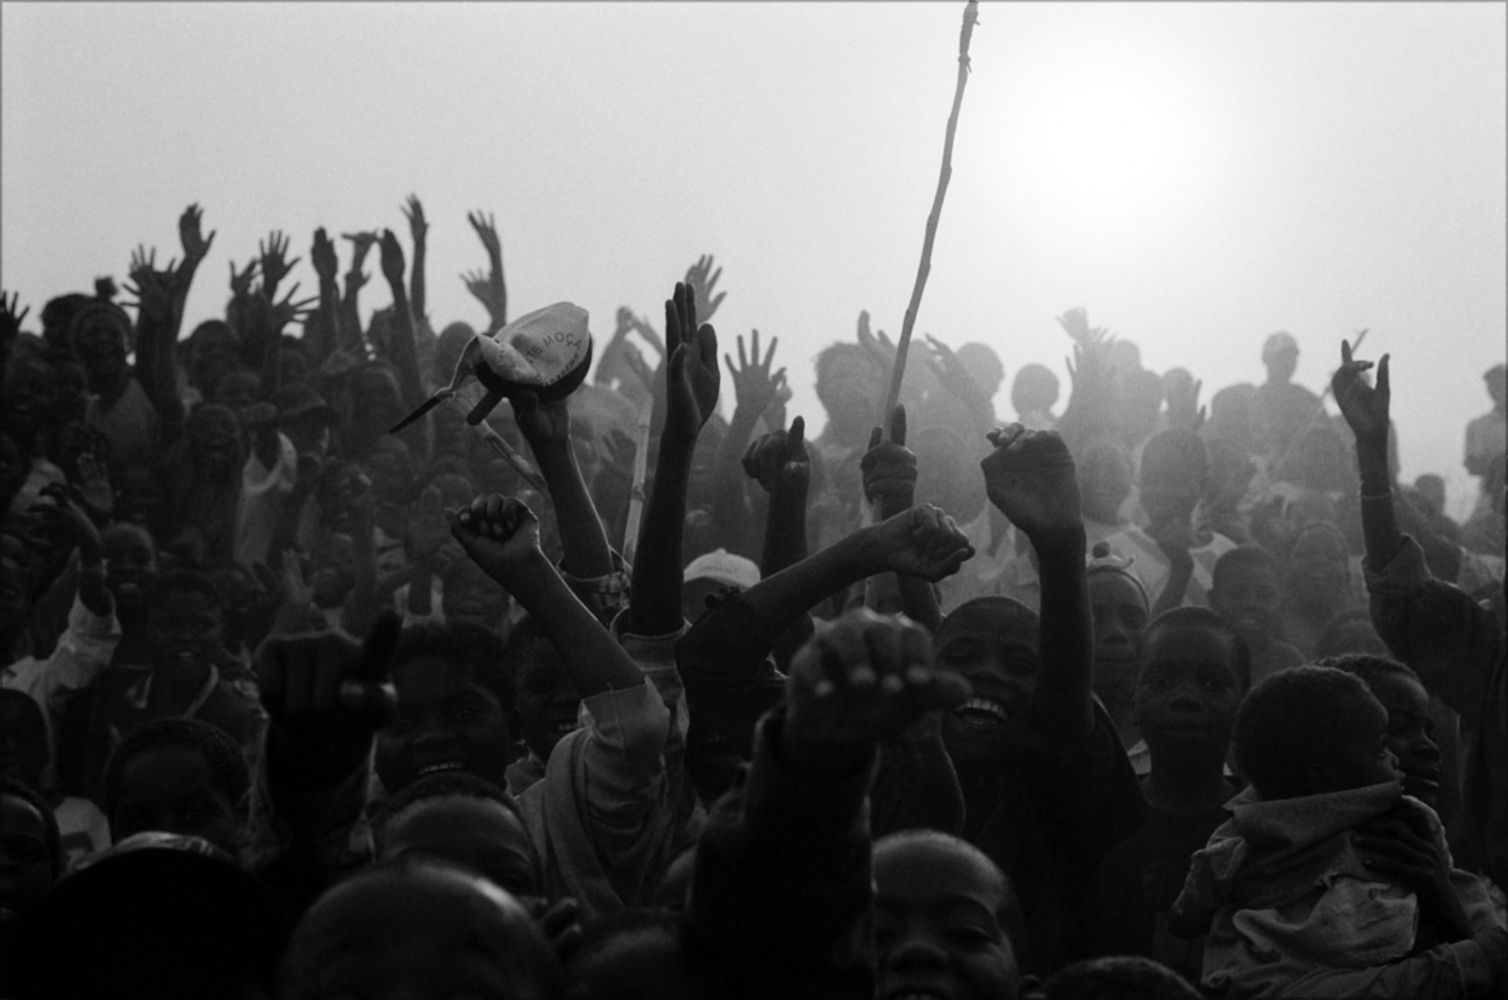 Euphoric Crowd, Kuito, Angola, July 2000